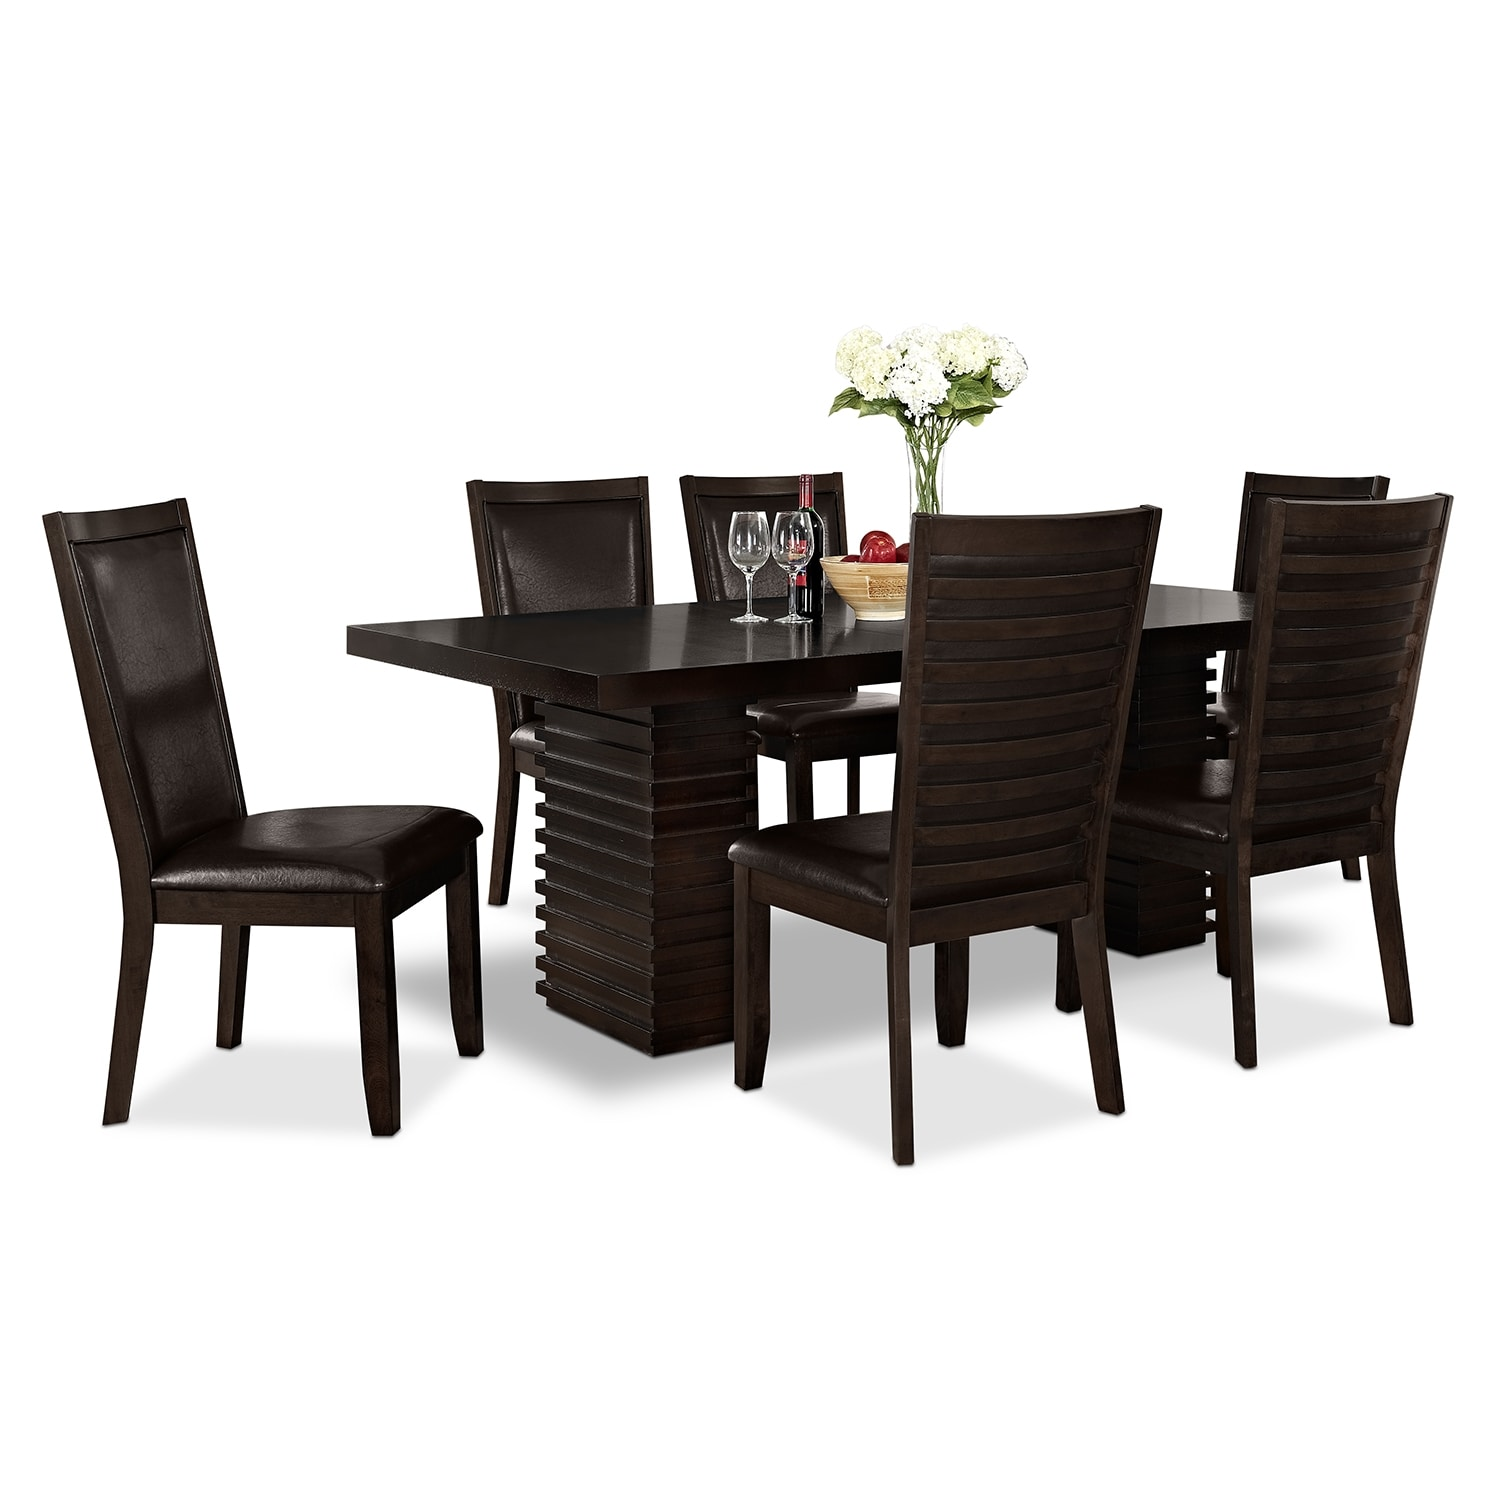 Paragon Table and 6 Chairs - Merlot and Brown